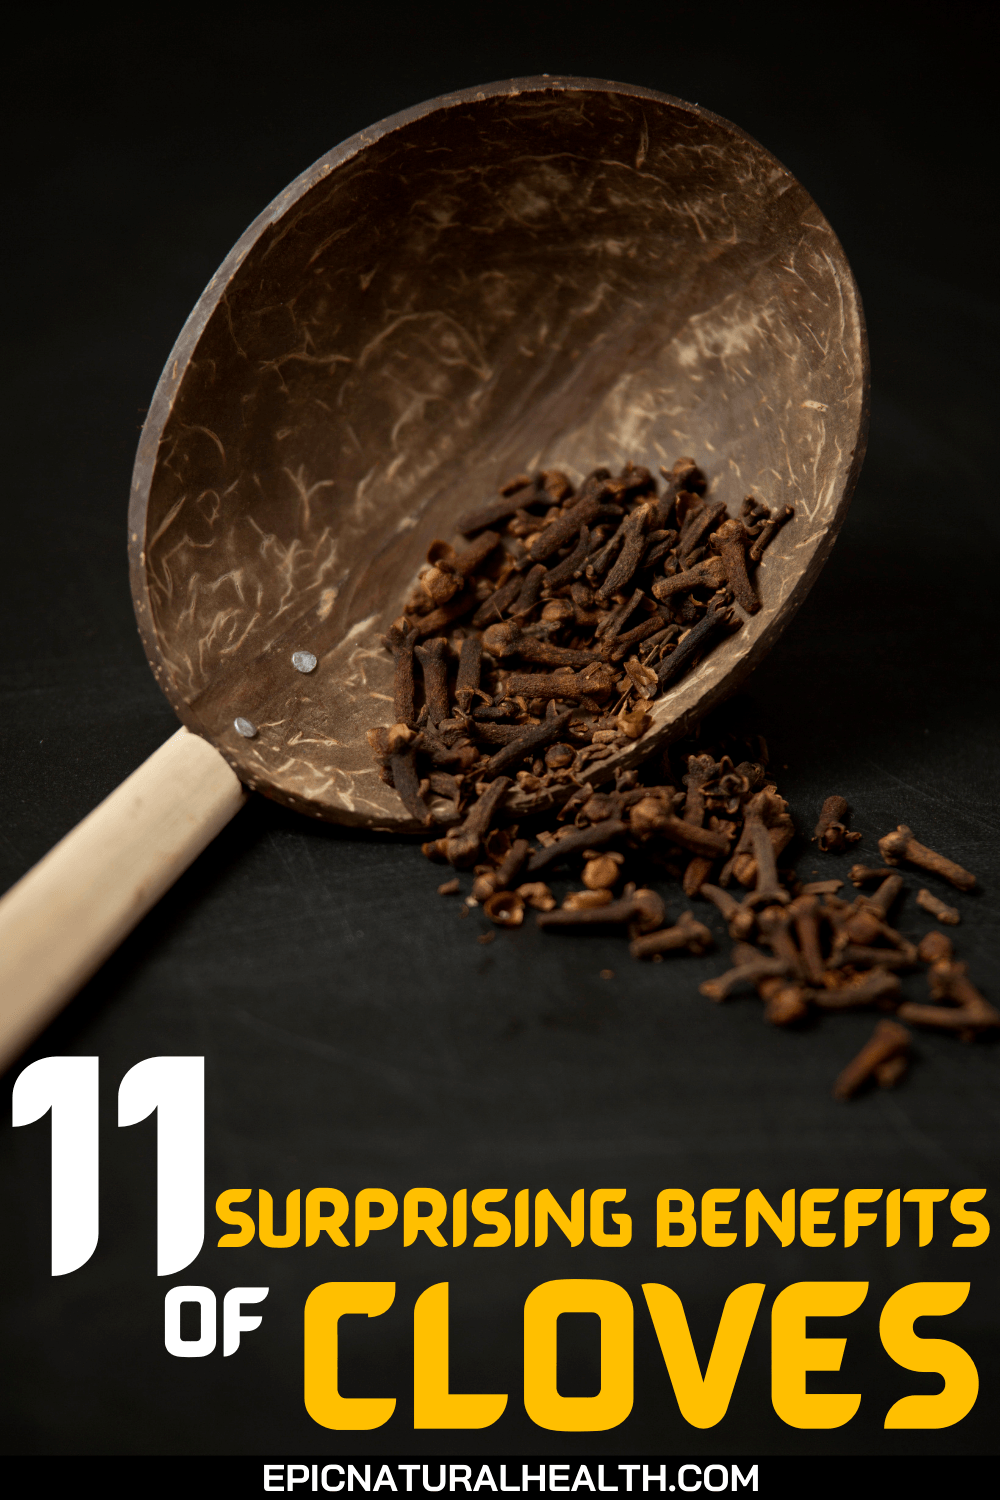 11 surprising benefits of cloves